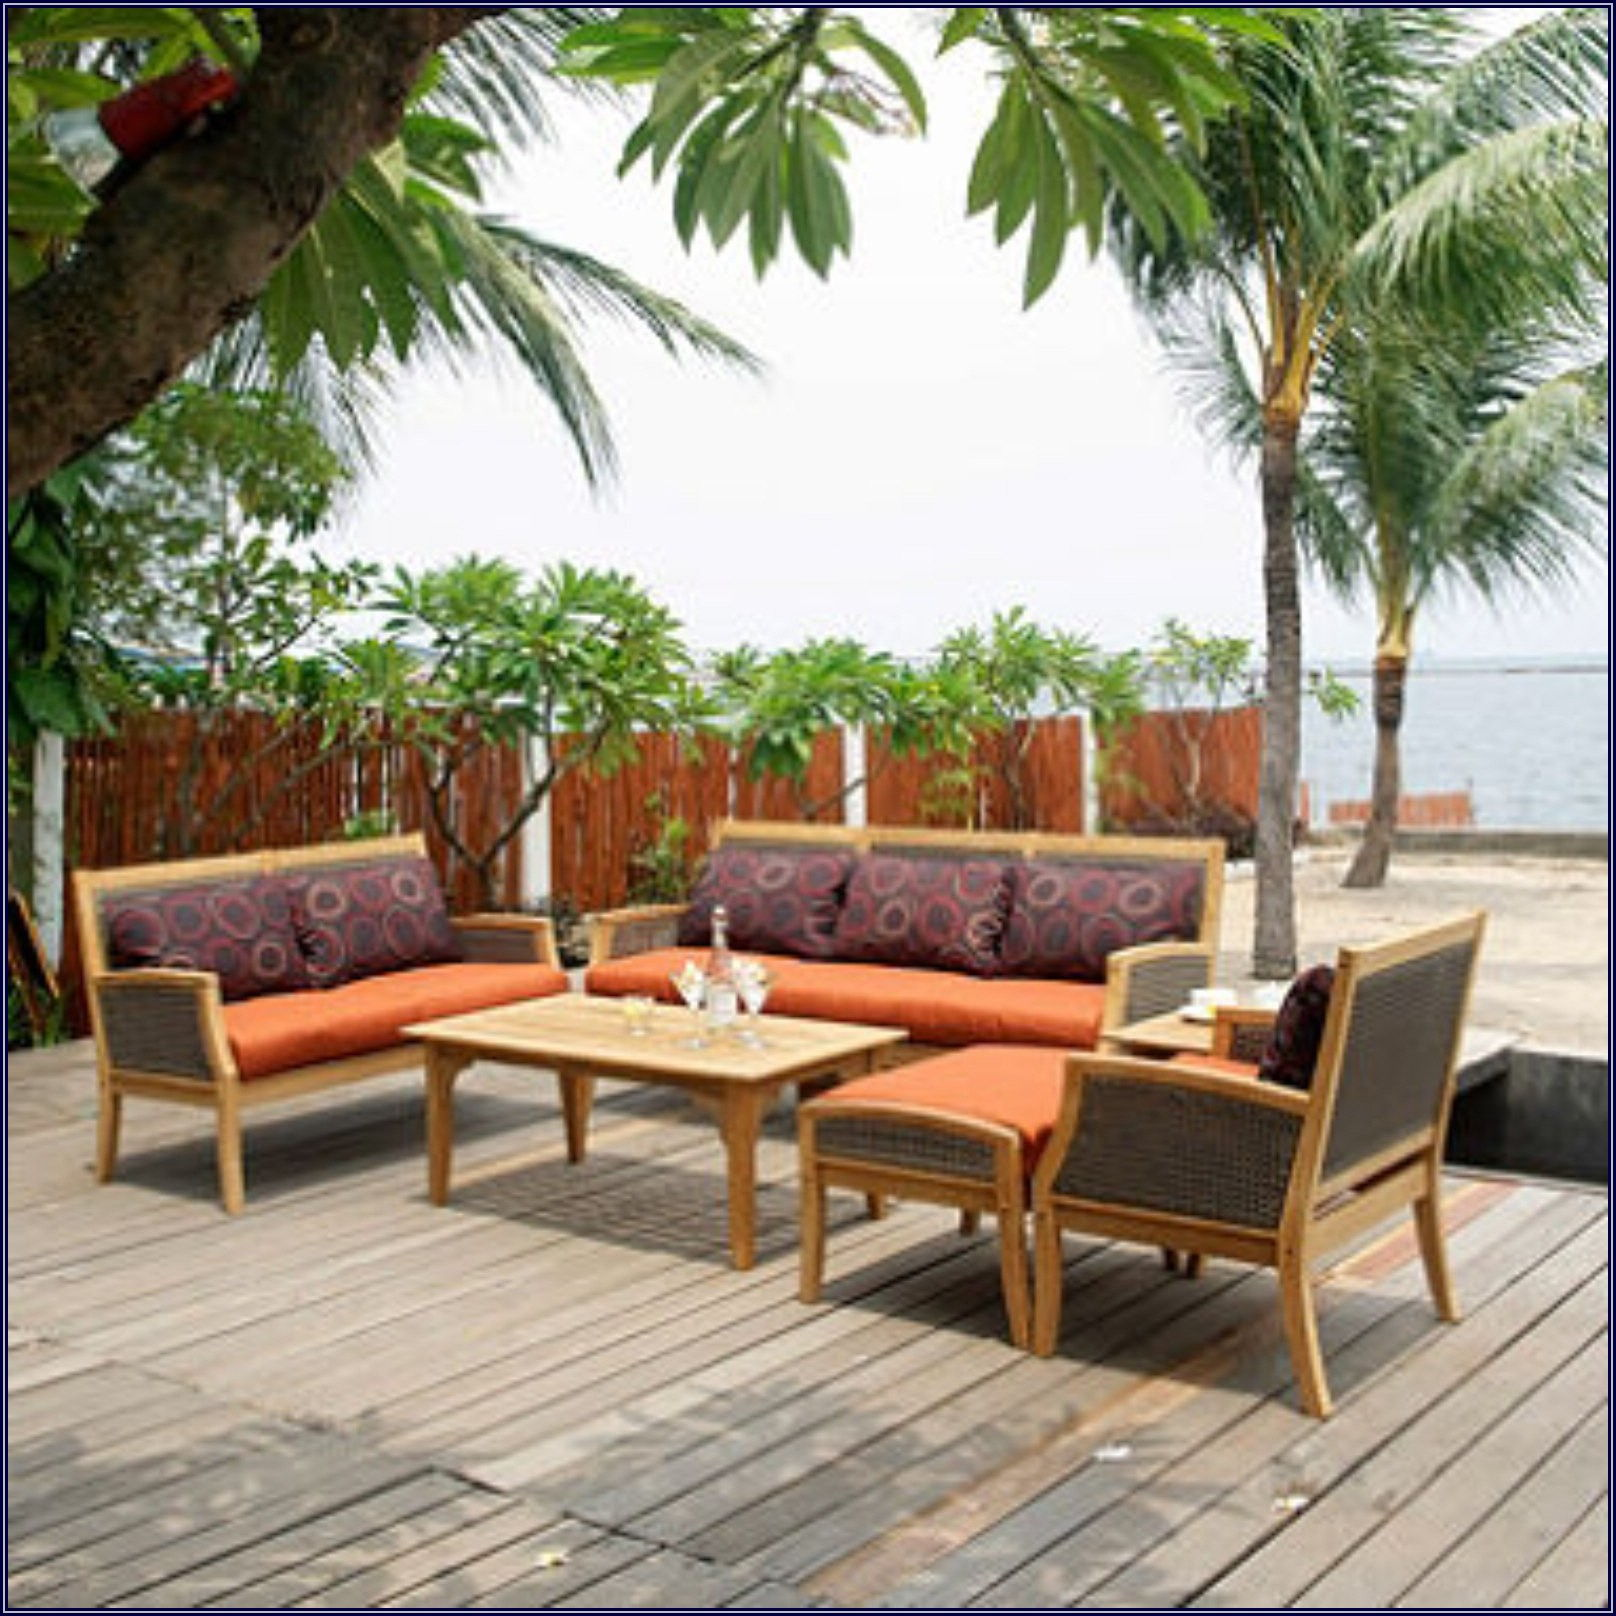 Kmart Outdoor Patio Furniture Covers